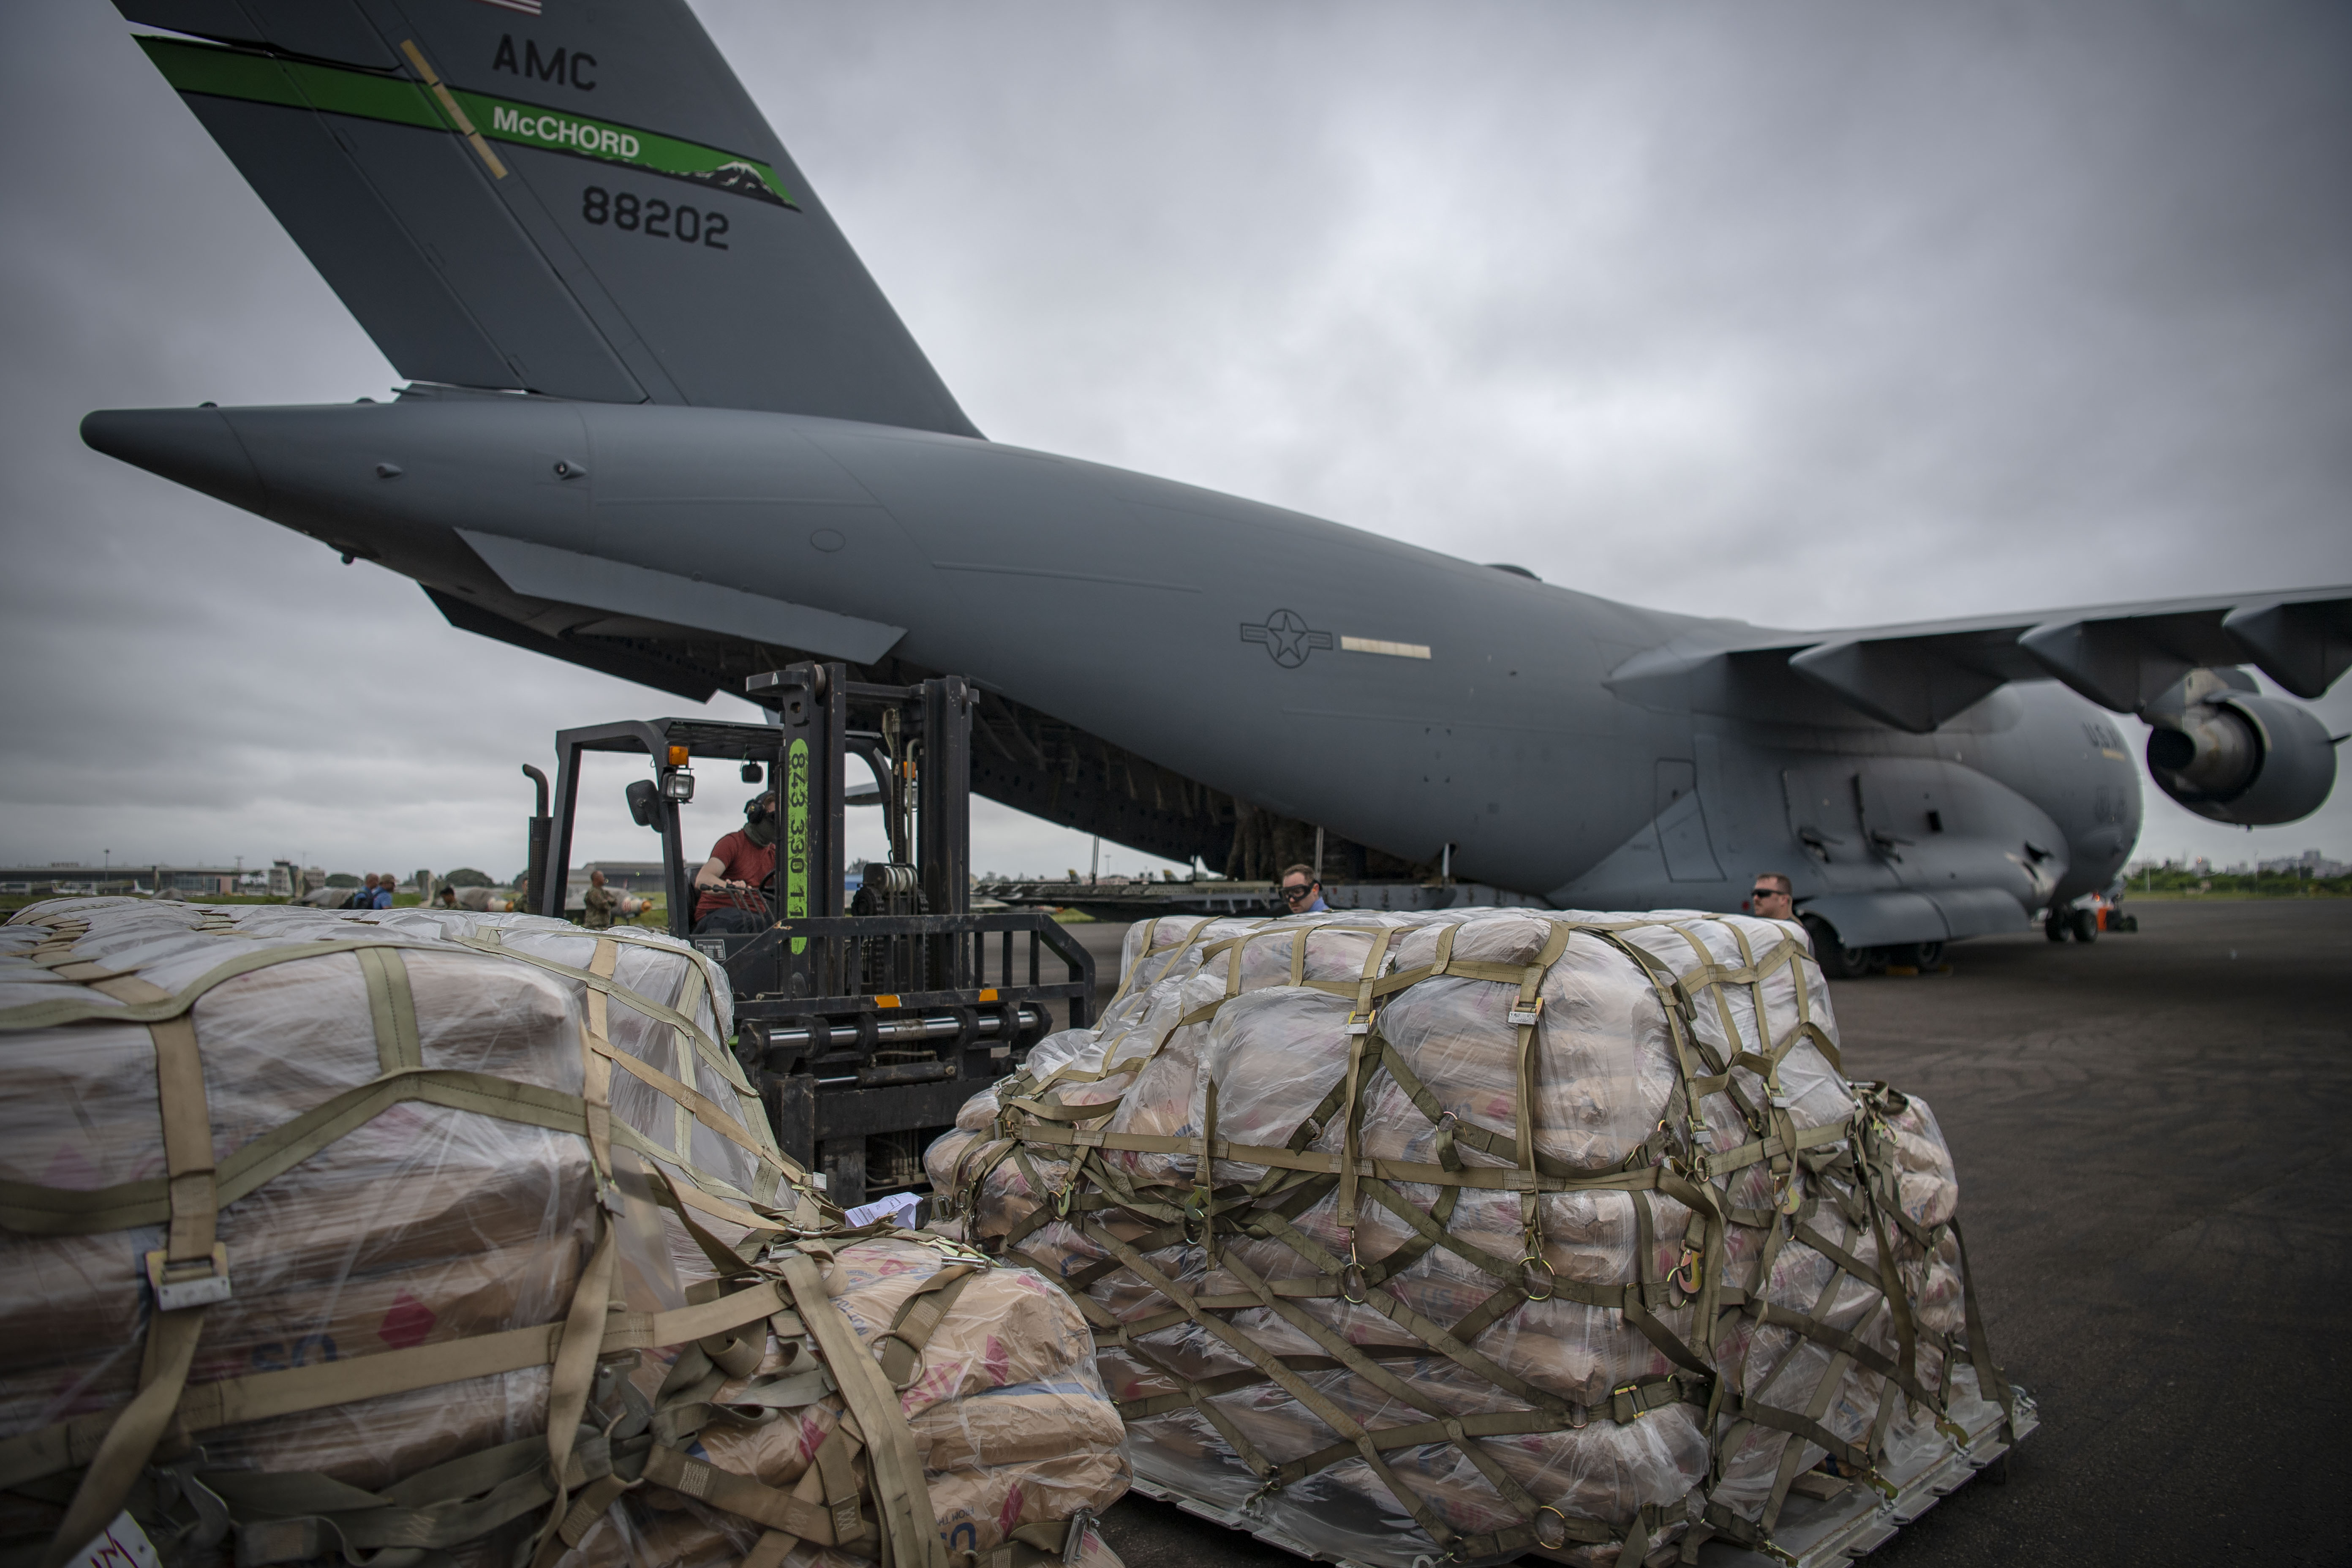 A U.S. Soldier loads bags of food on a C-130J Hercules assigned to the 75th Expeditionary Airlift Squadron, Combined Joint Task Force-Horn of Africa, at the airport in Maputo, Mozambique, March 29, 2019. The task force is helping meet requirements identified by USAID assessment teams and humanitarian organizations working in the region by providing logistics support and manpower to USAID at the request of the Government of the Republic of Mozambique. (U.S. Air Force Photo by Tech. Sgt. Chris Hibben)